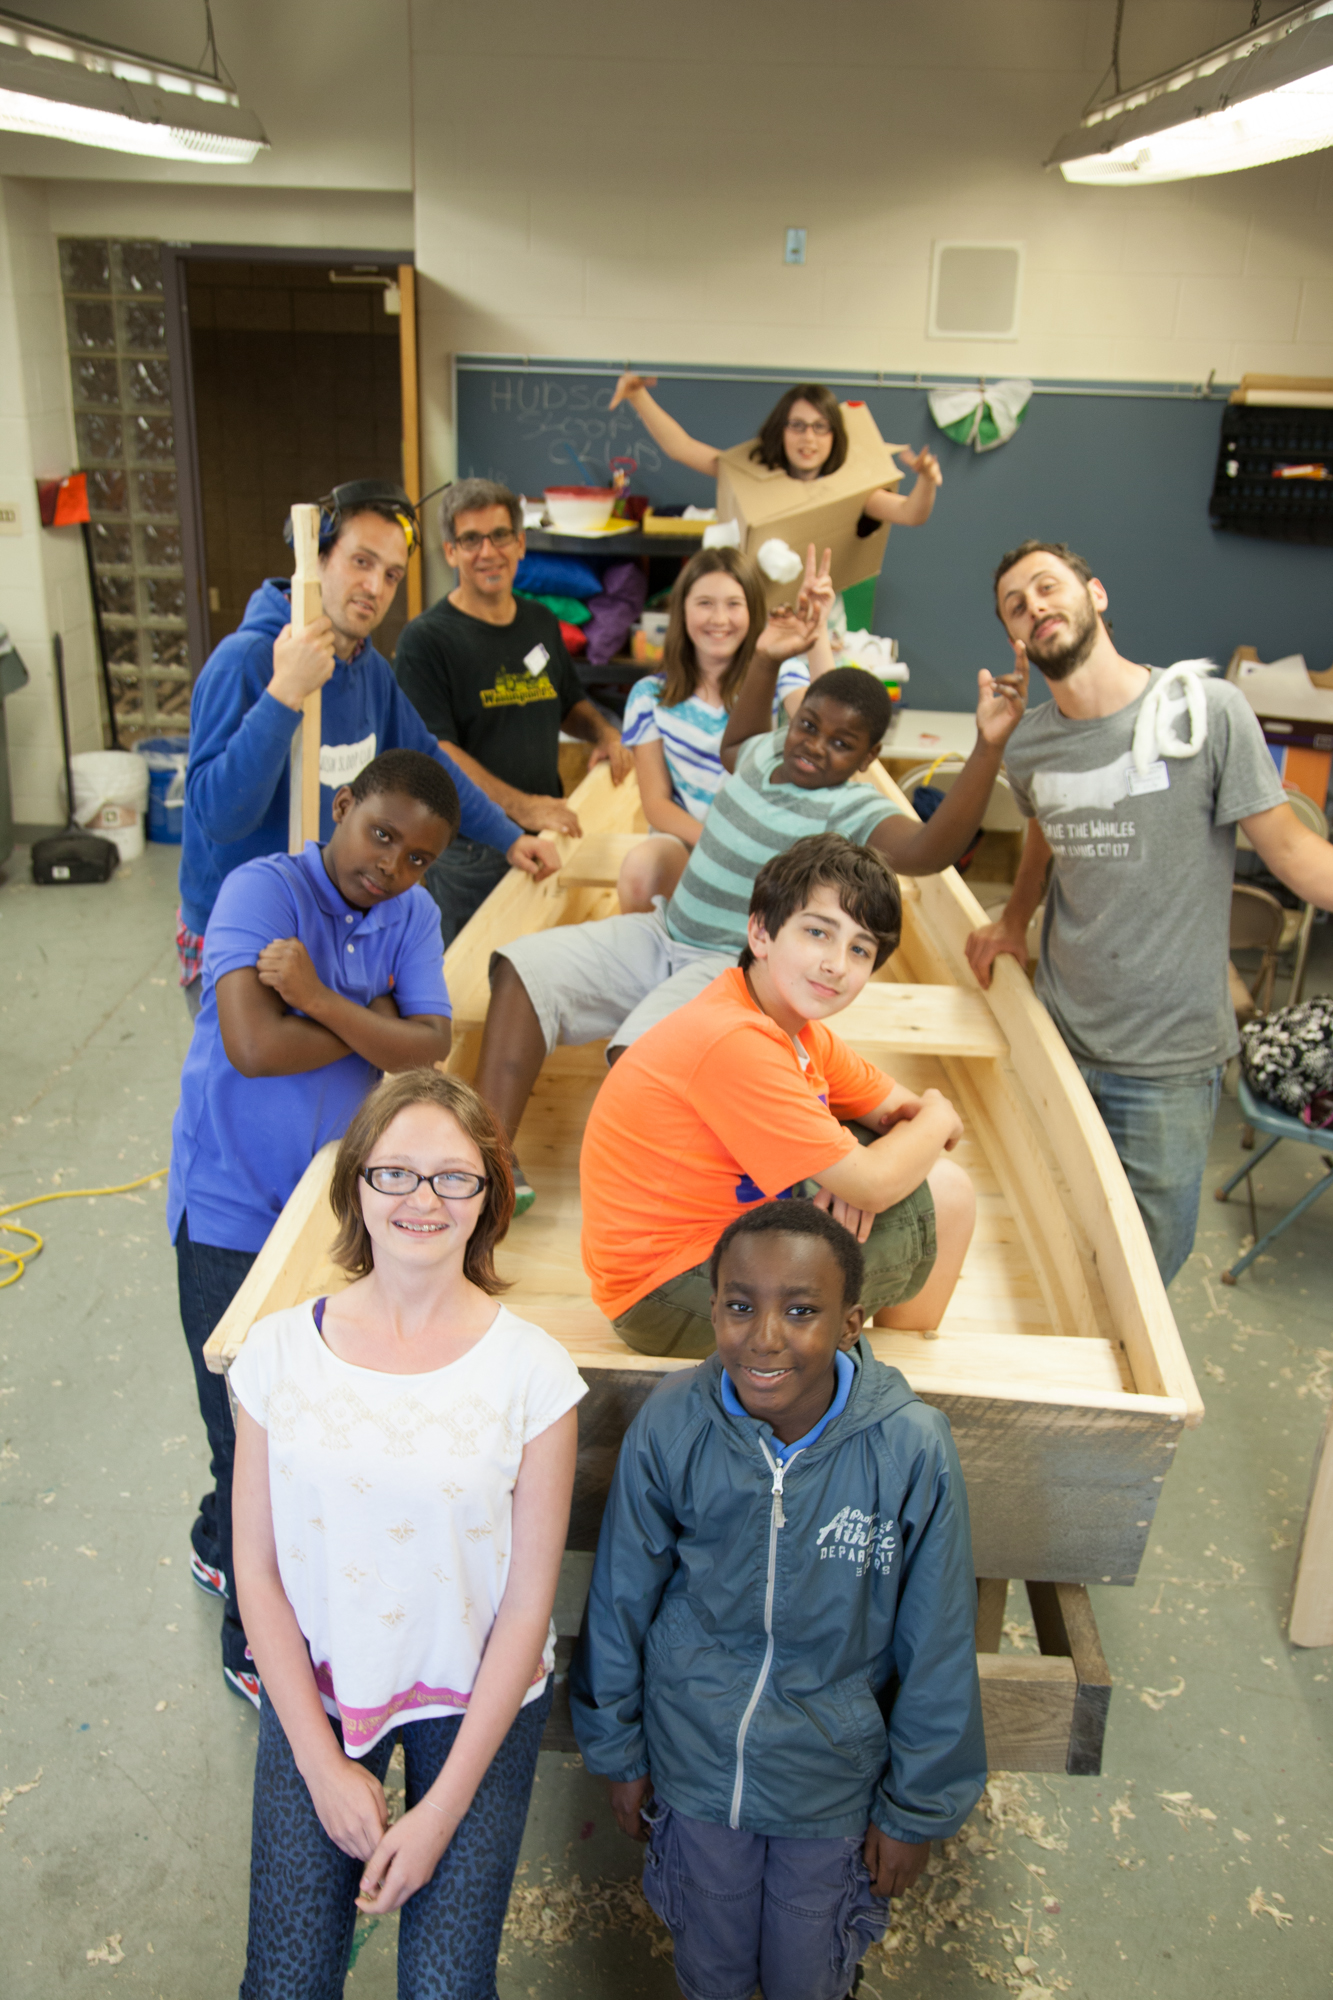 (the 6th graders and their boat!)